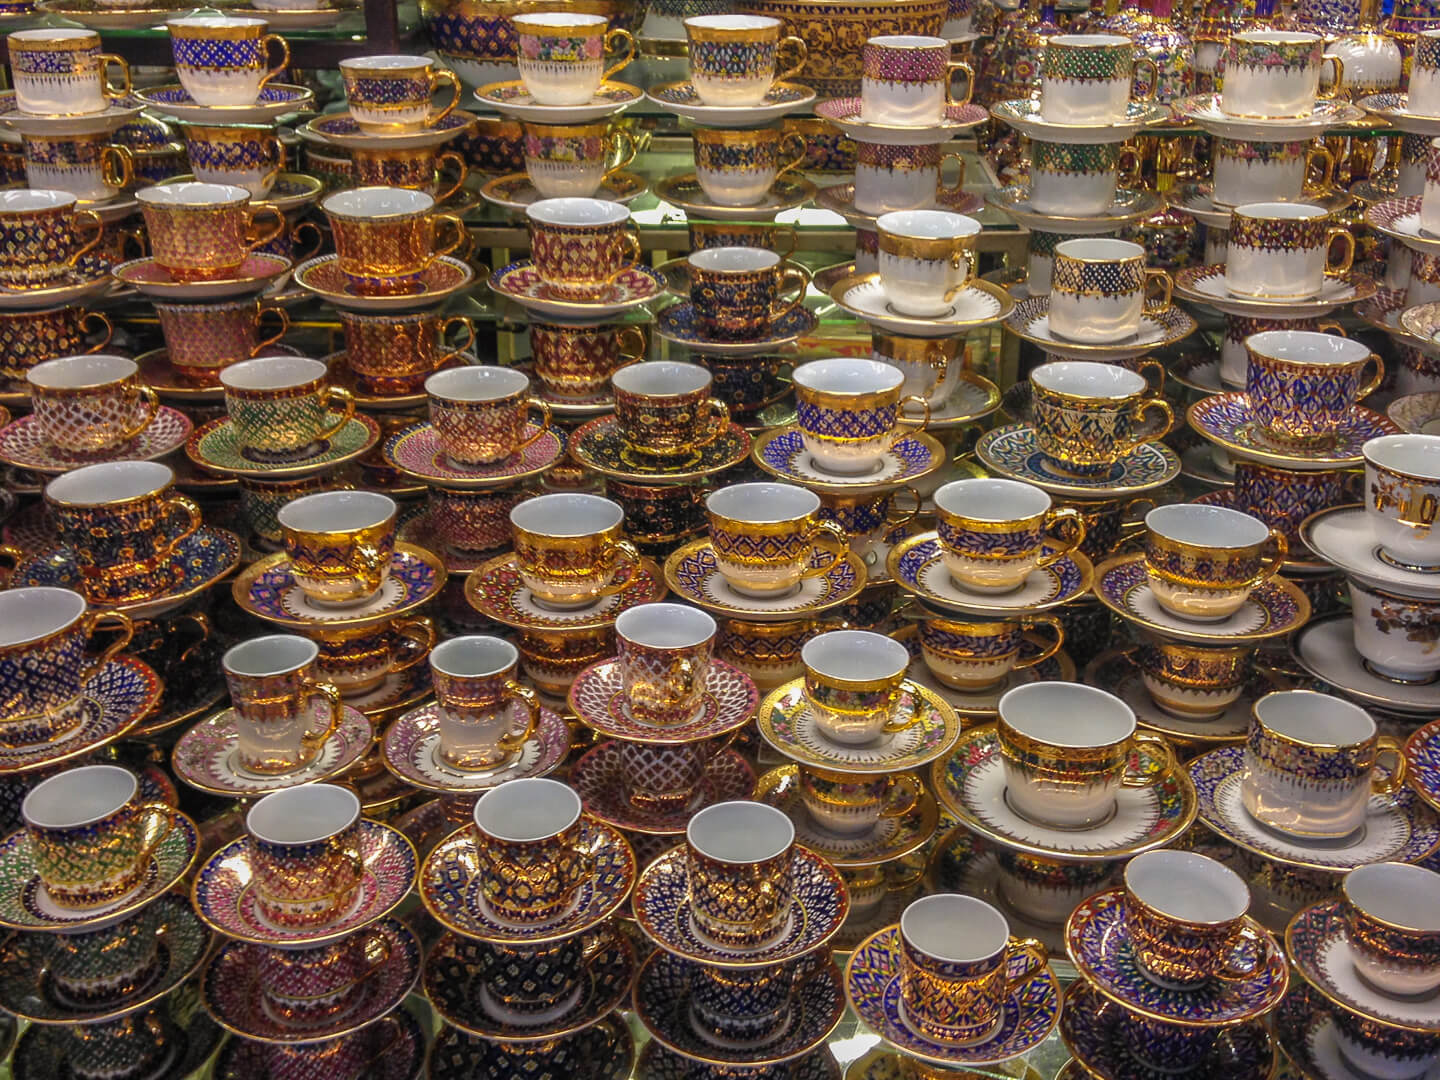 tea cups for sale at market in bangkok thailand